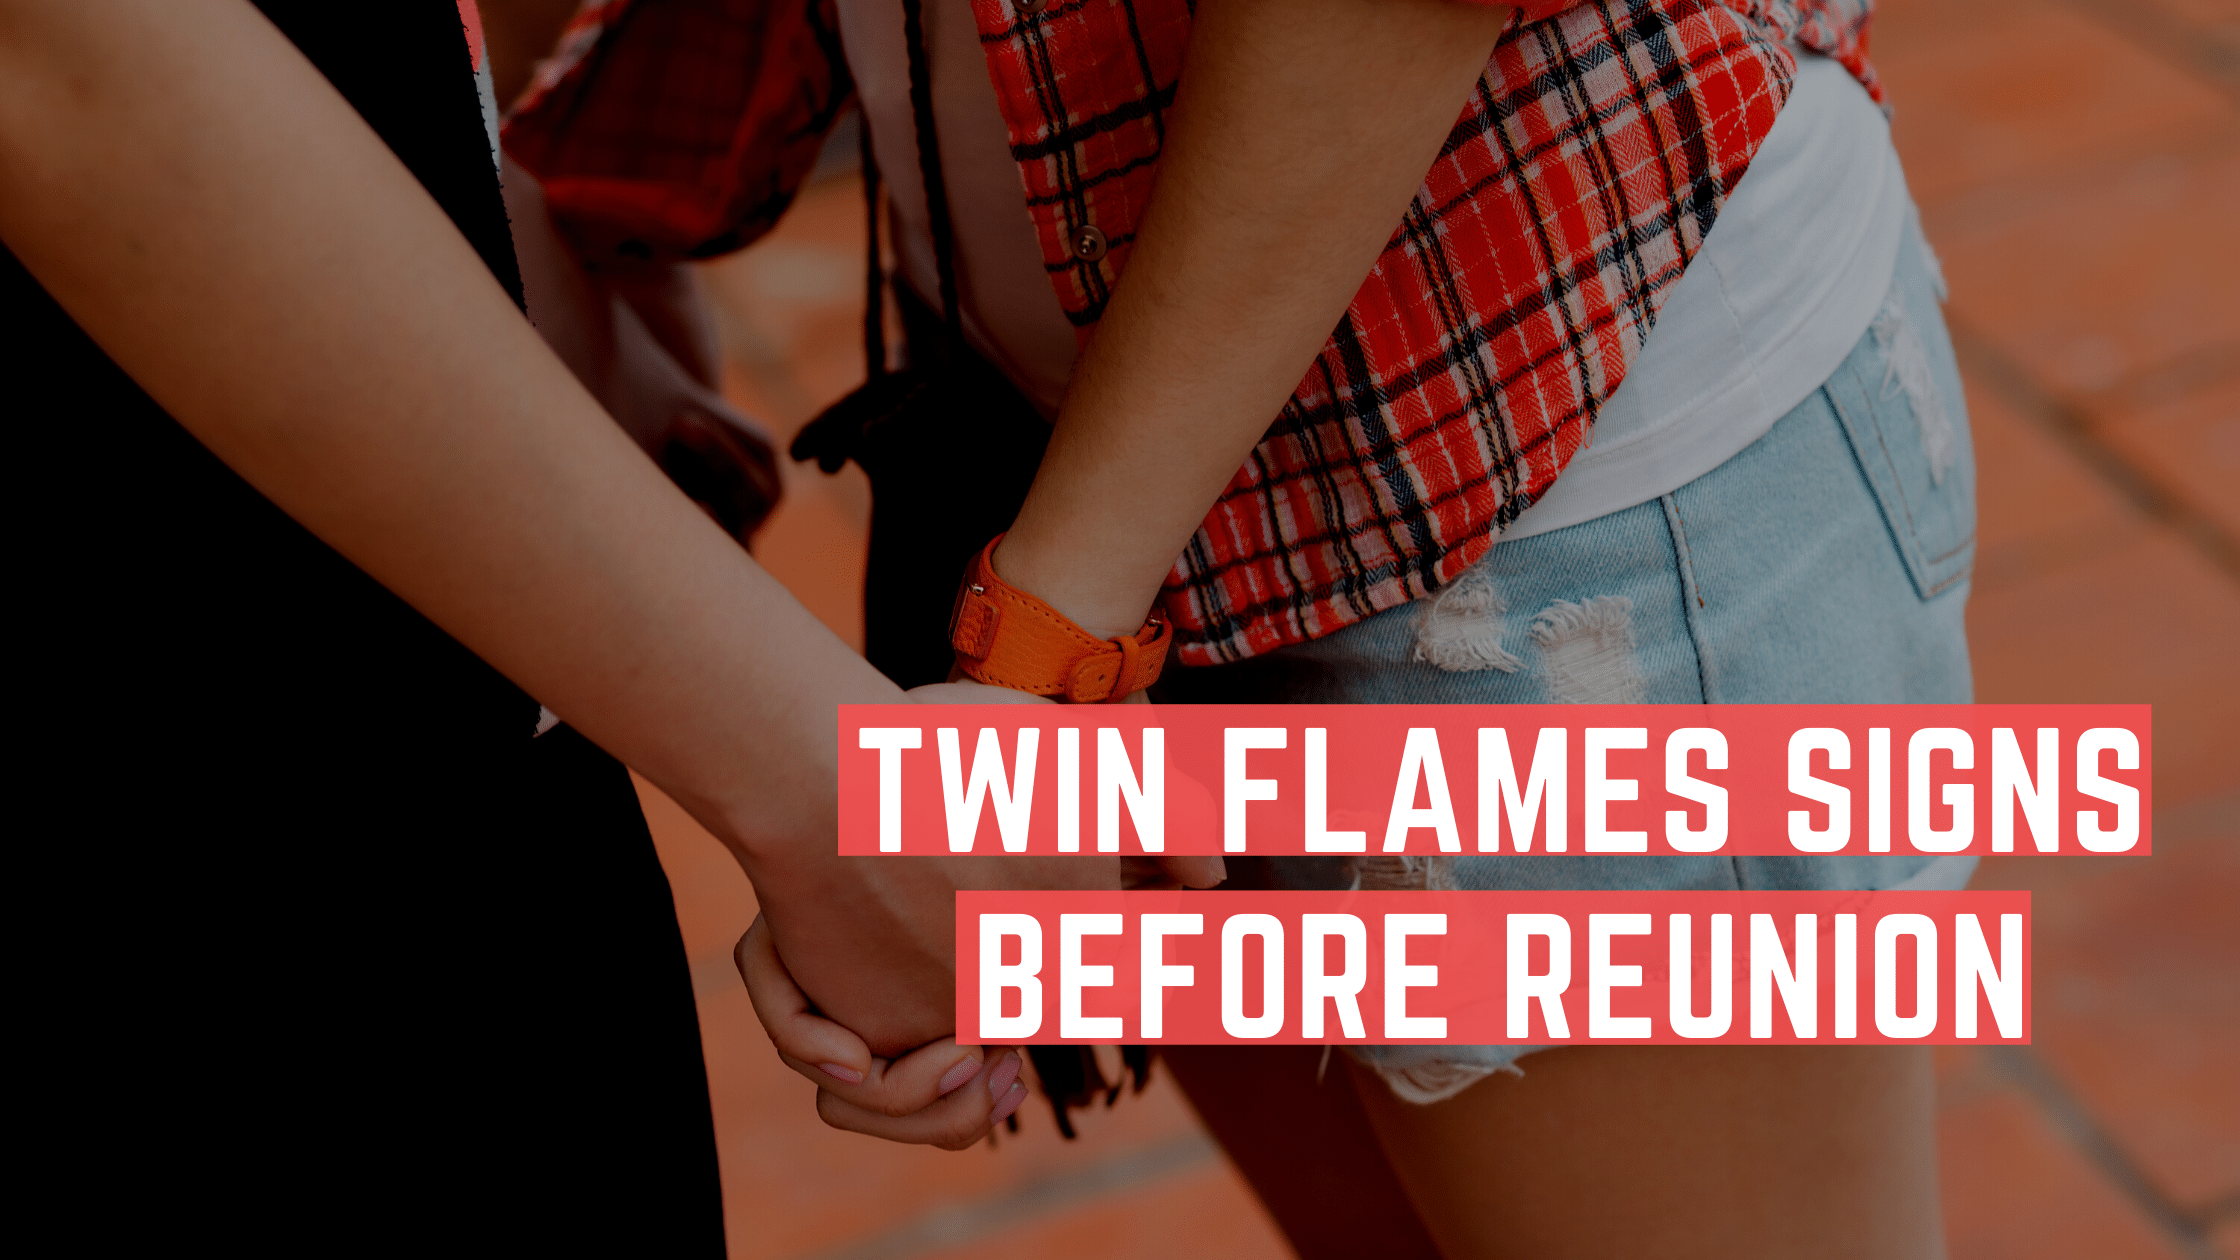 Twin Flames Signs Before Reunion